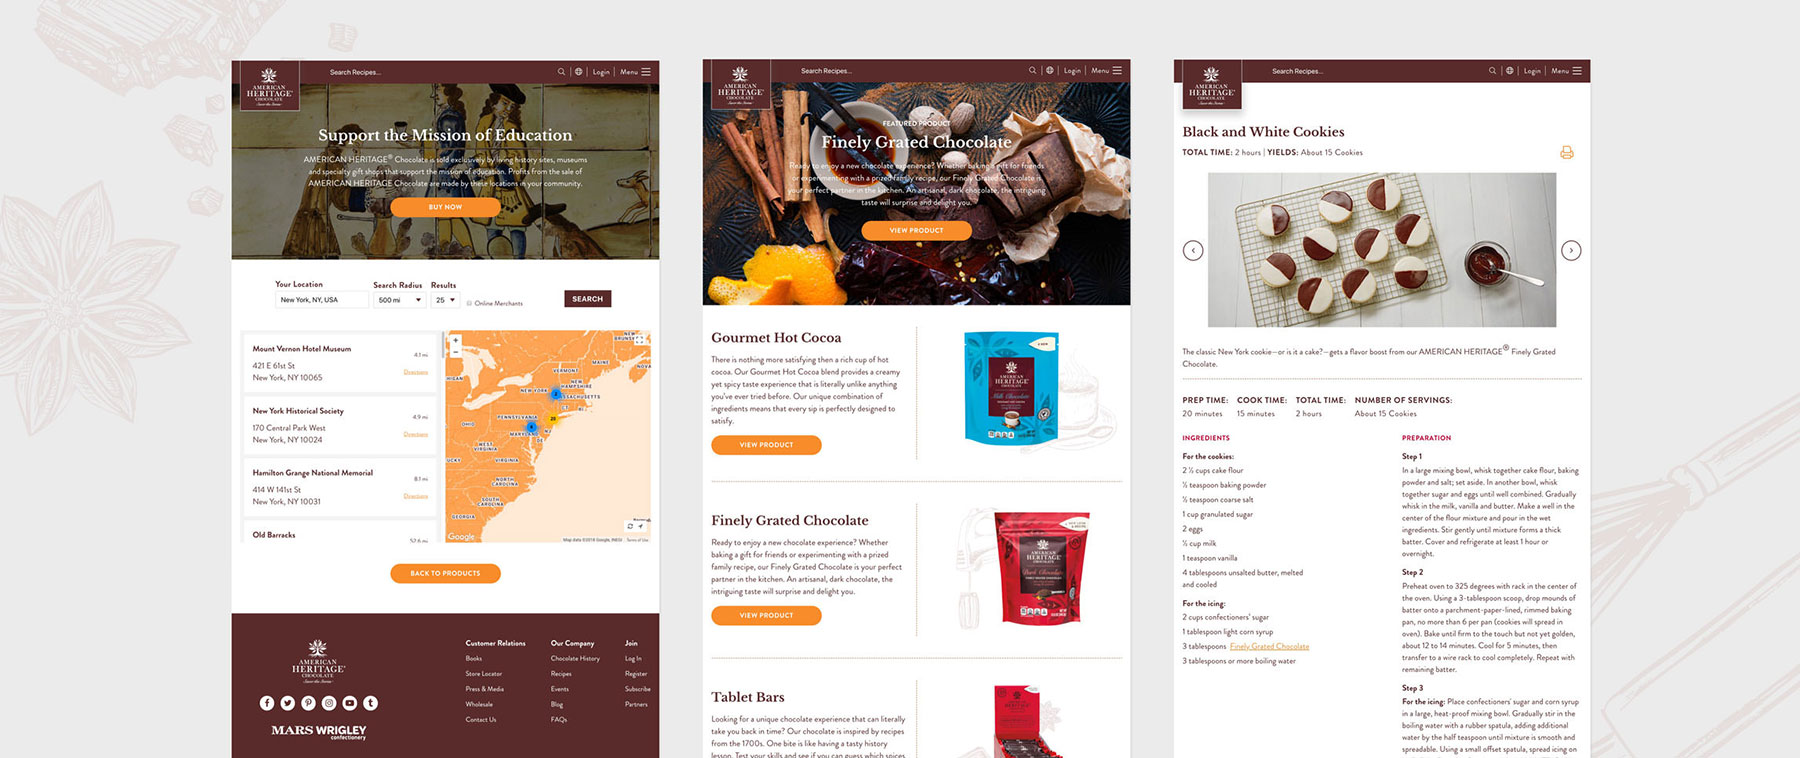 American Heritage Chocolate website design samples